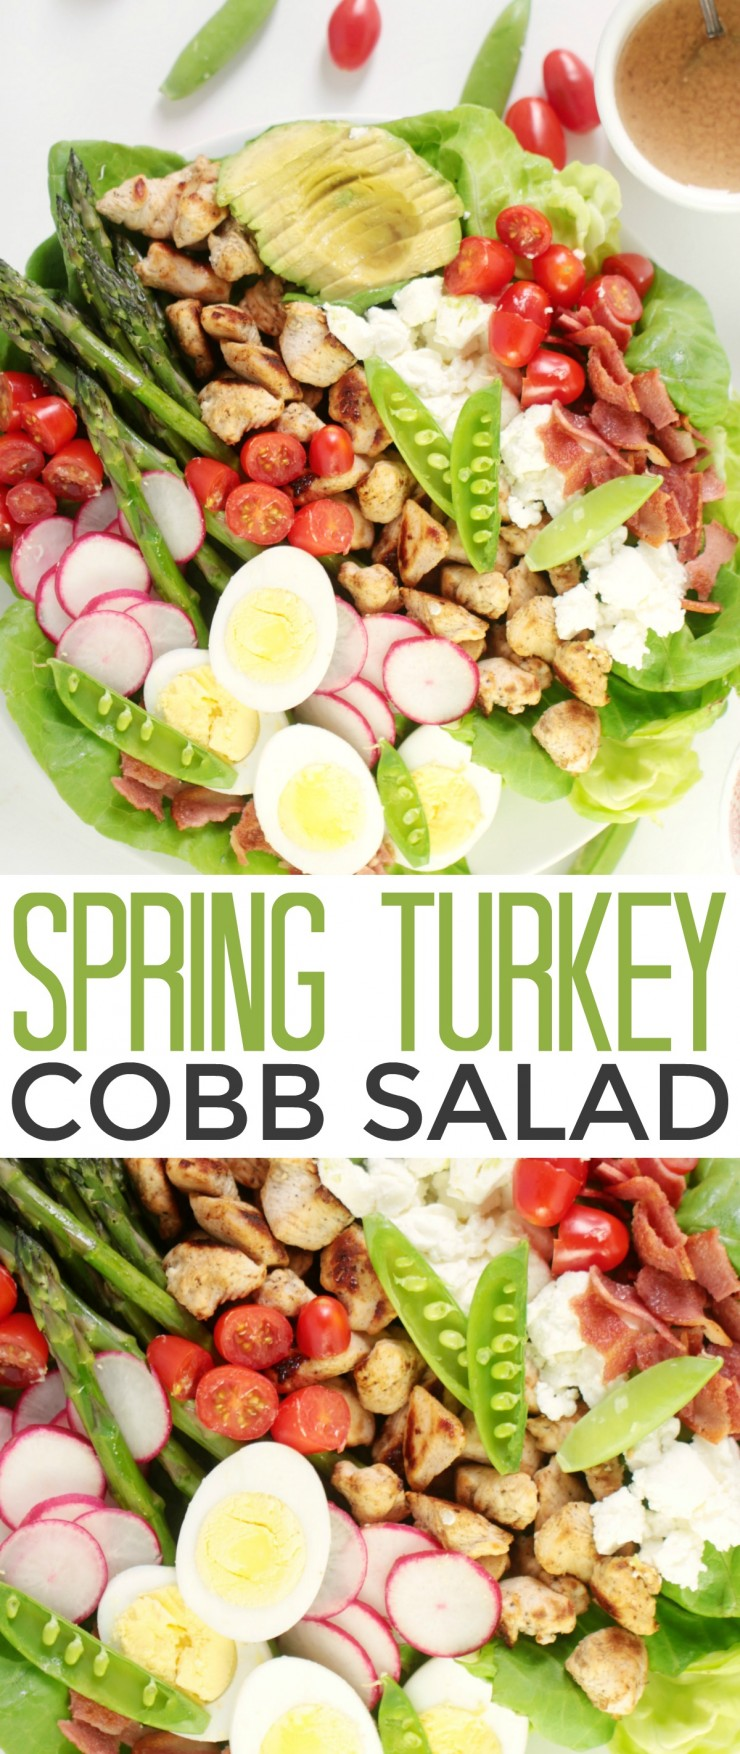 This Spring Turkey Cobb Salad recipe is a twist on the traditional cobb with a burst of fresh springtime favourites like sugar snap peas and asparagus! Perfect for an everyday family meal or a special occasion lunch, this cobb salad featuring Canadian Turkey and fresh spring produce is sure to be a hit!